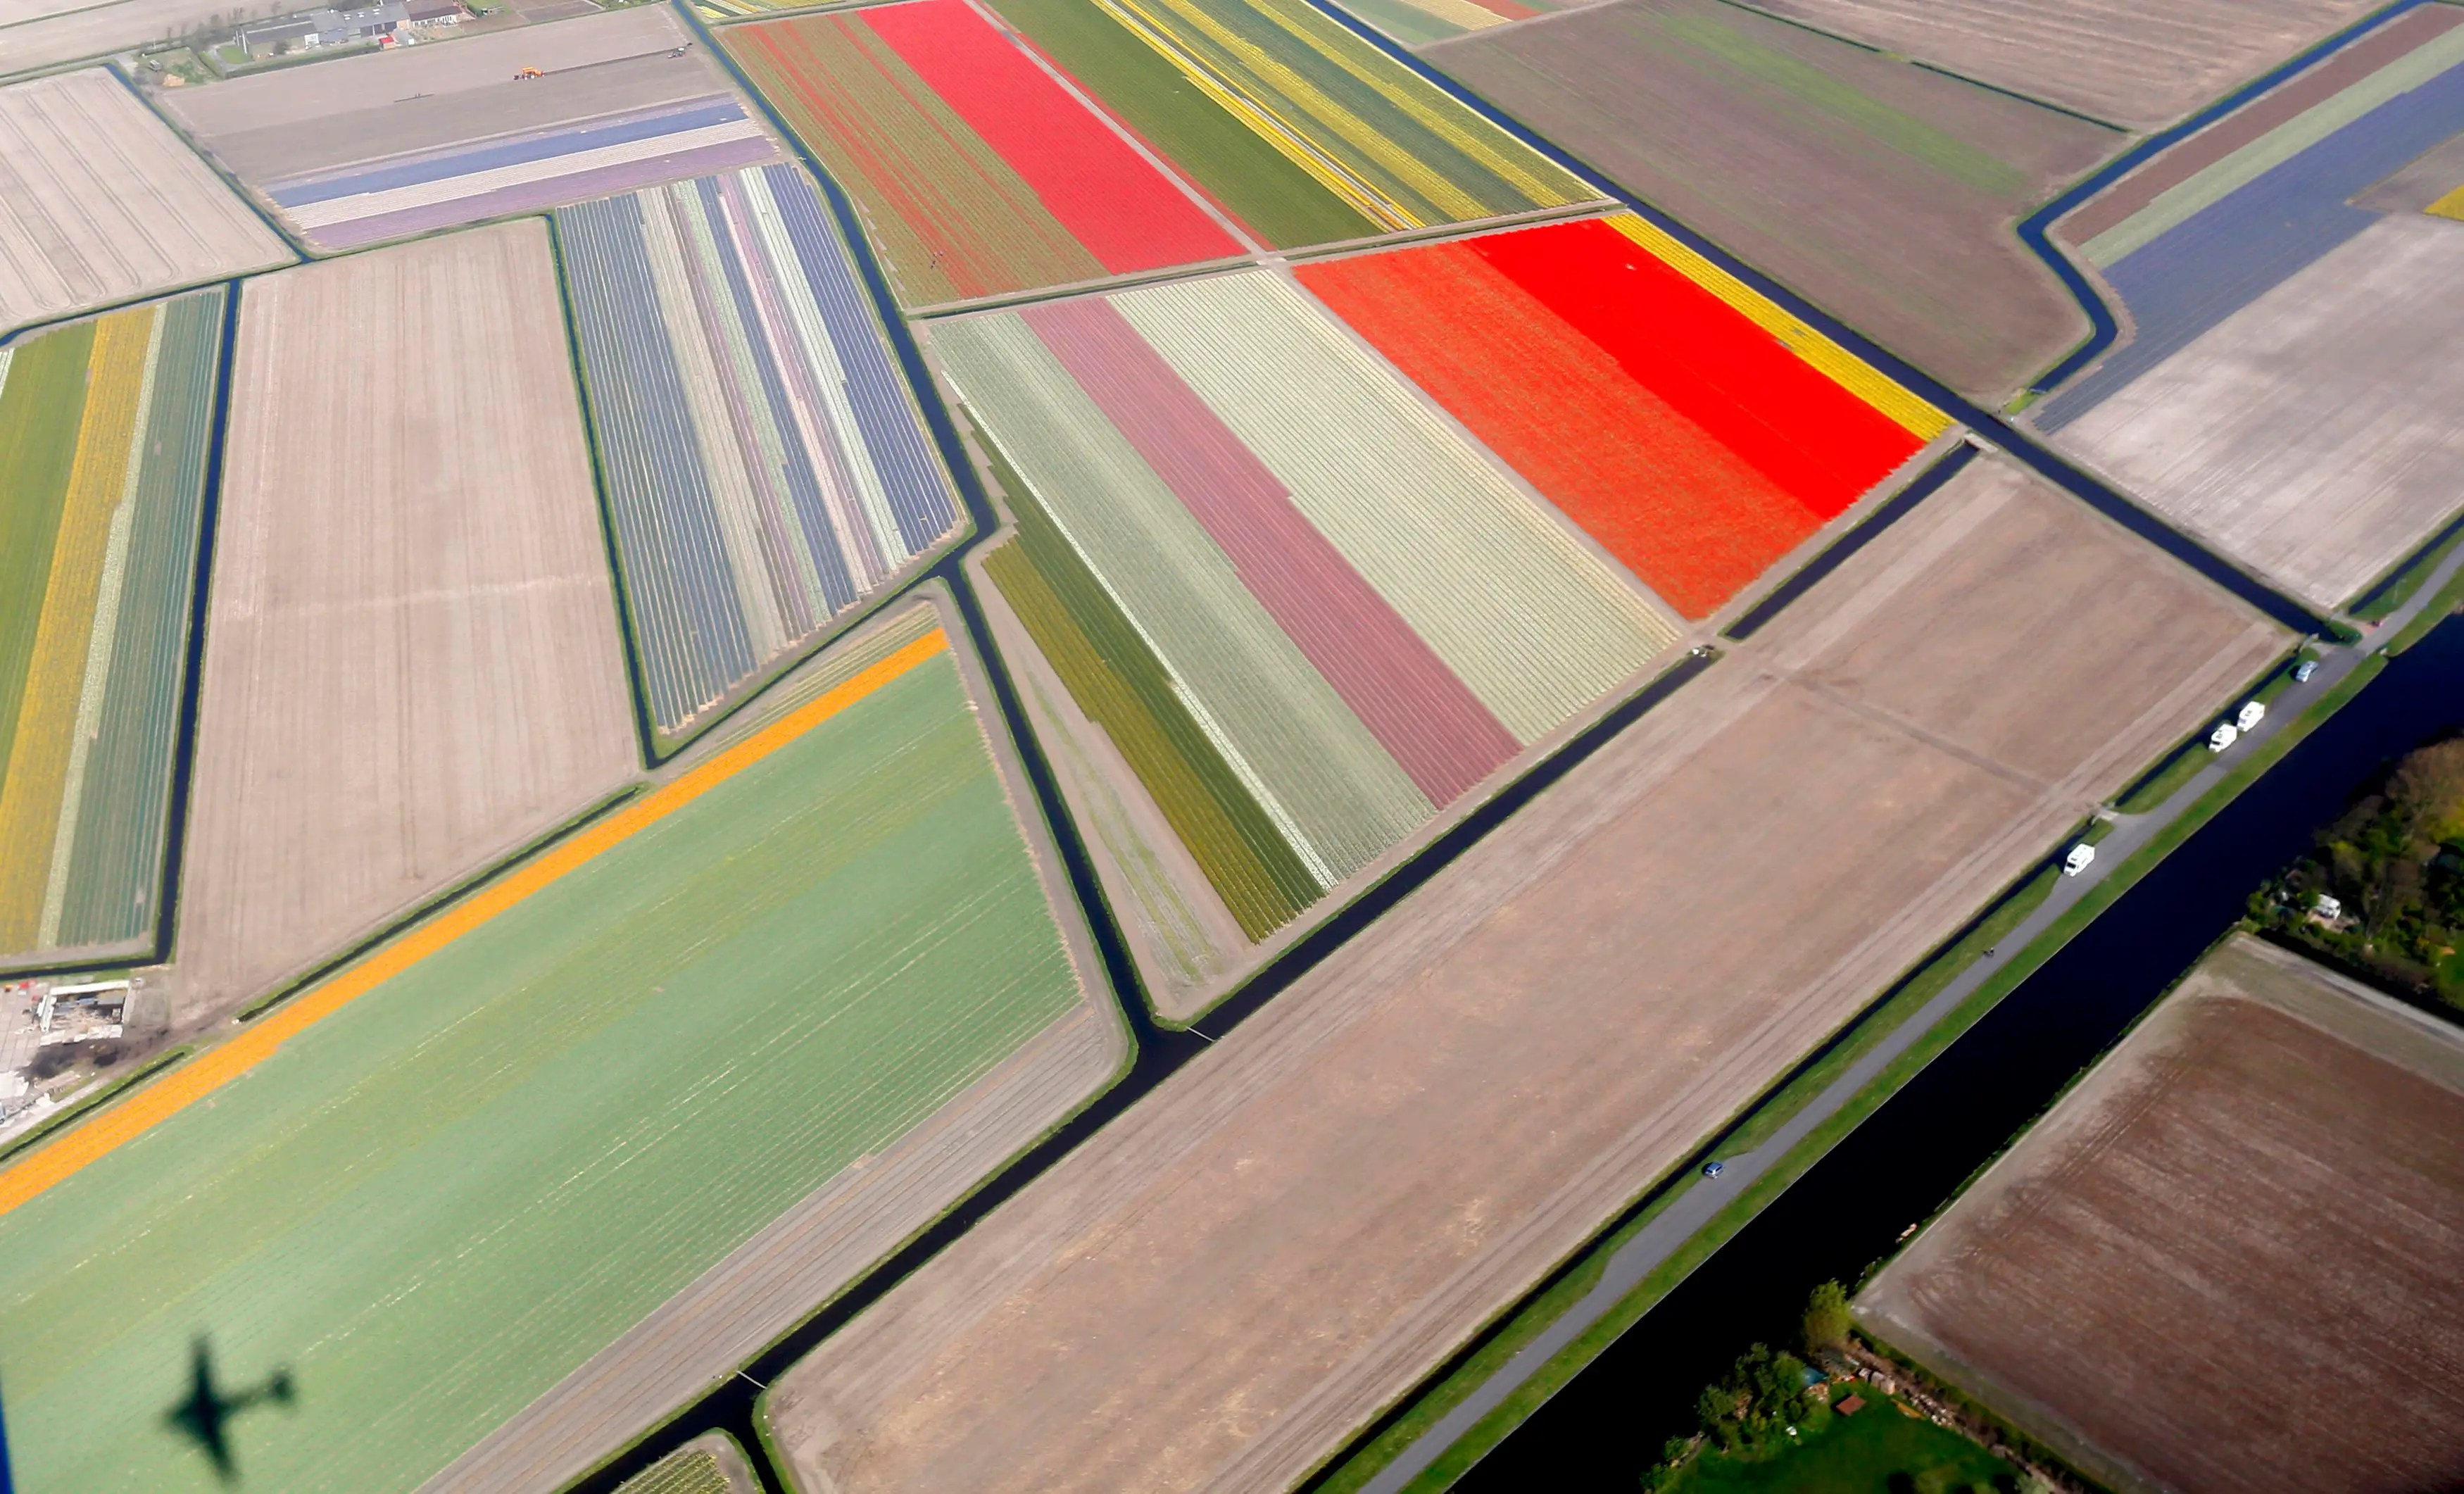 One of the world's largest flower gardens, known as the Garden of Europe, is seen from above in the Netherlands.